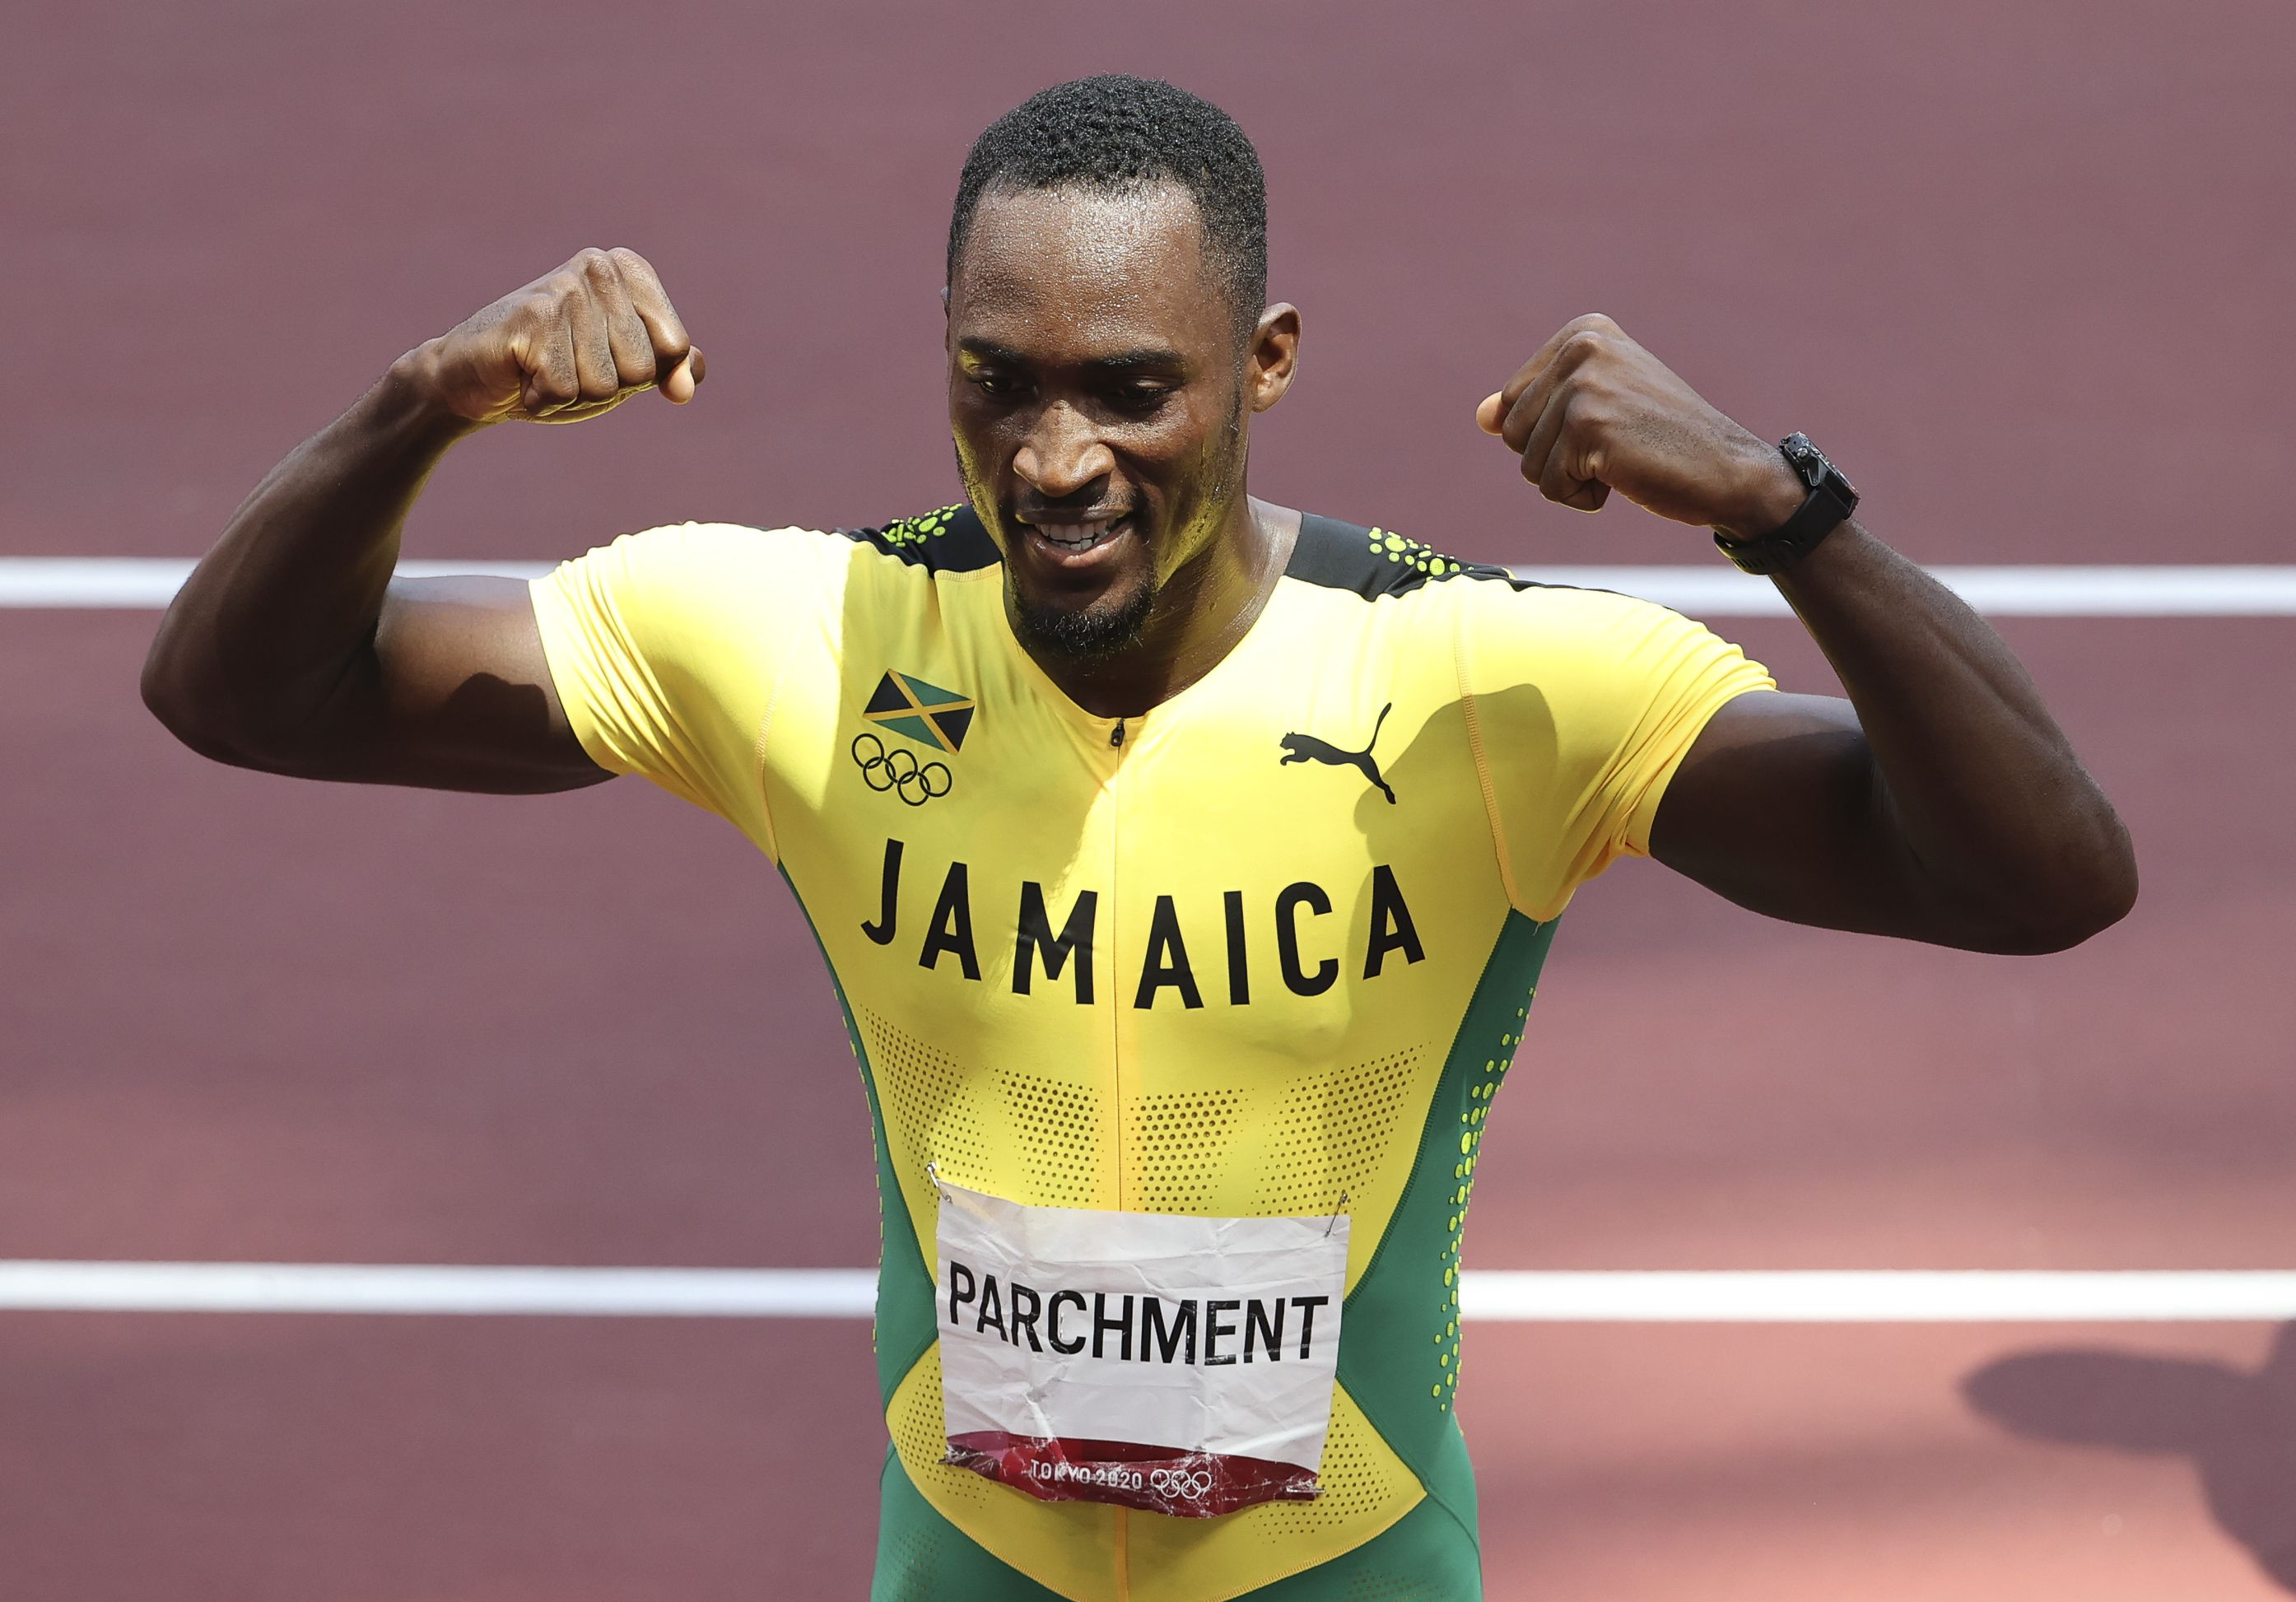 Jamaican hurdler Hansle Parchment thanks volunteer for act of kindness that led to Tokyo gold